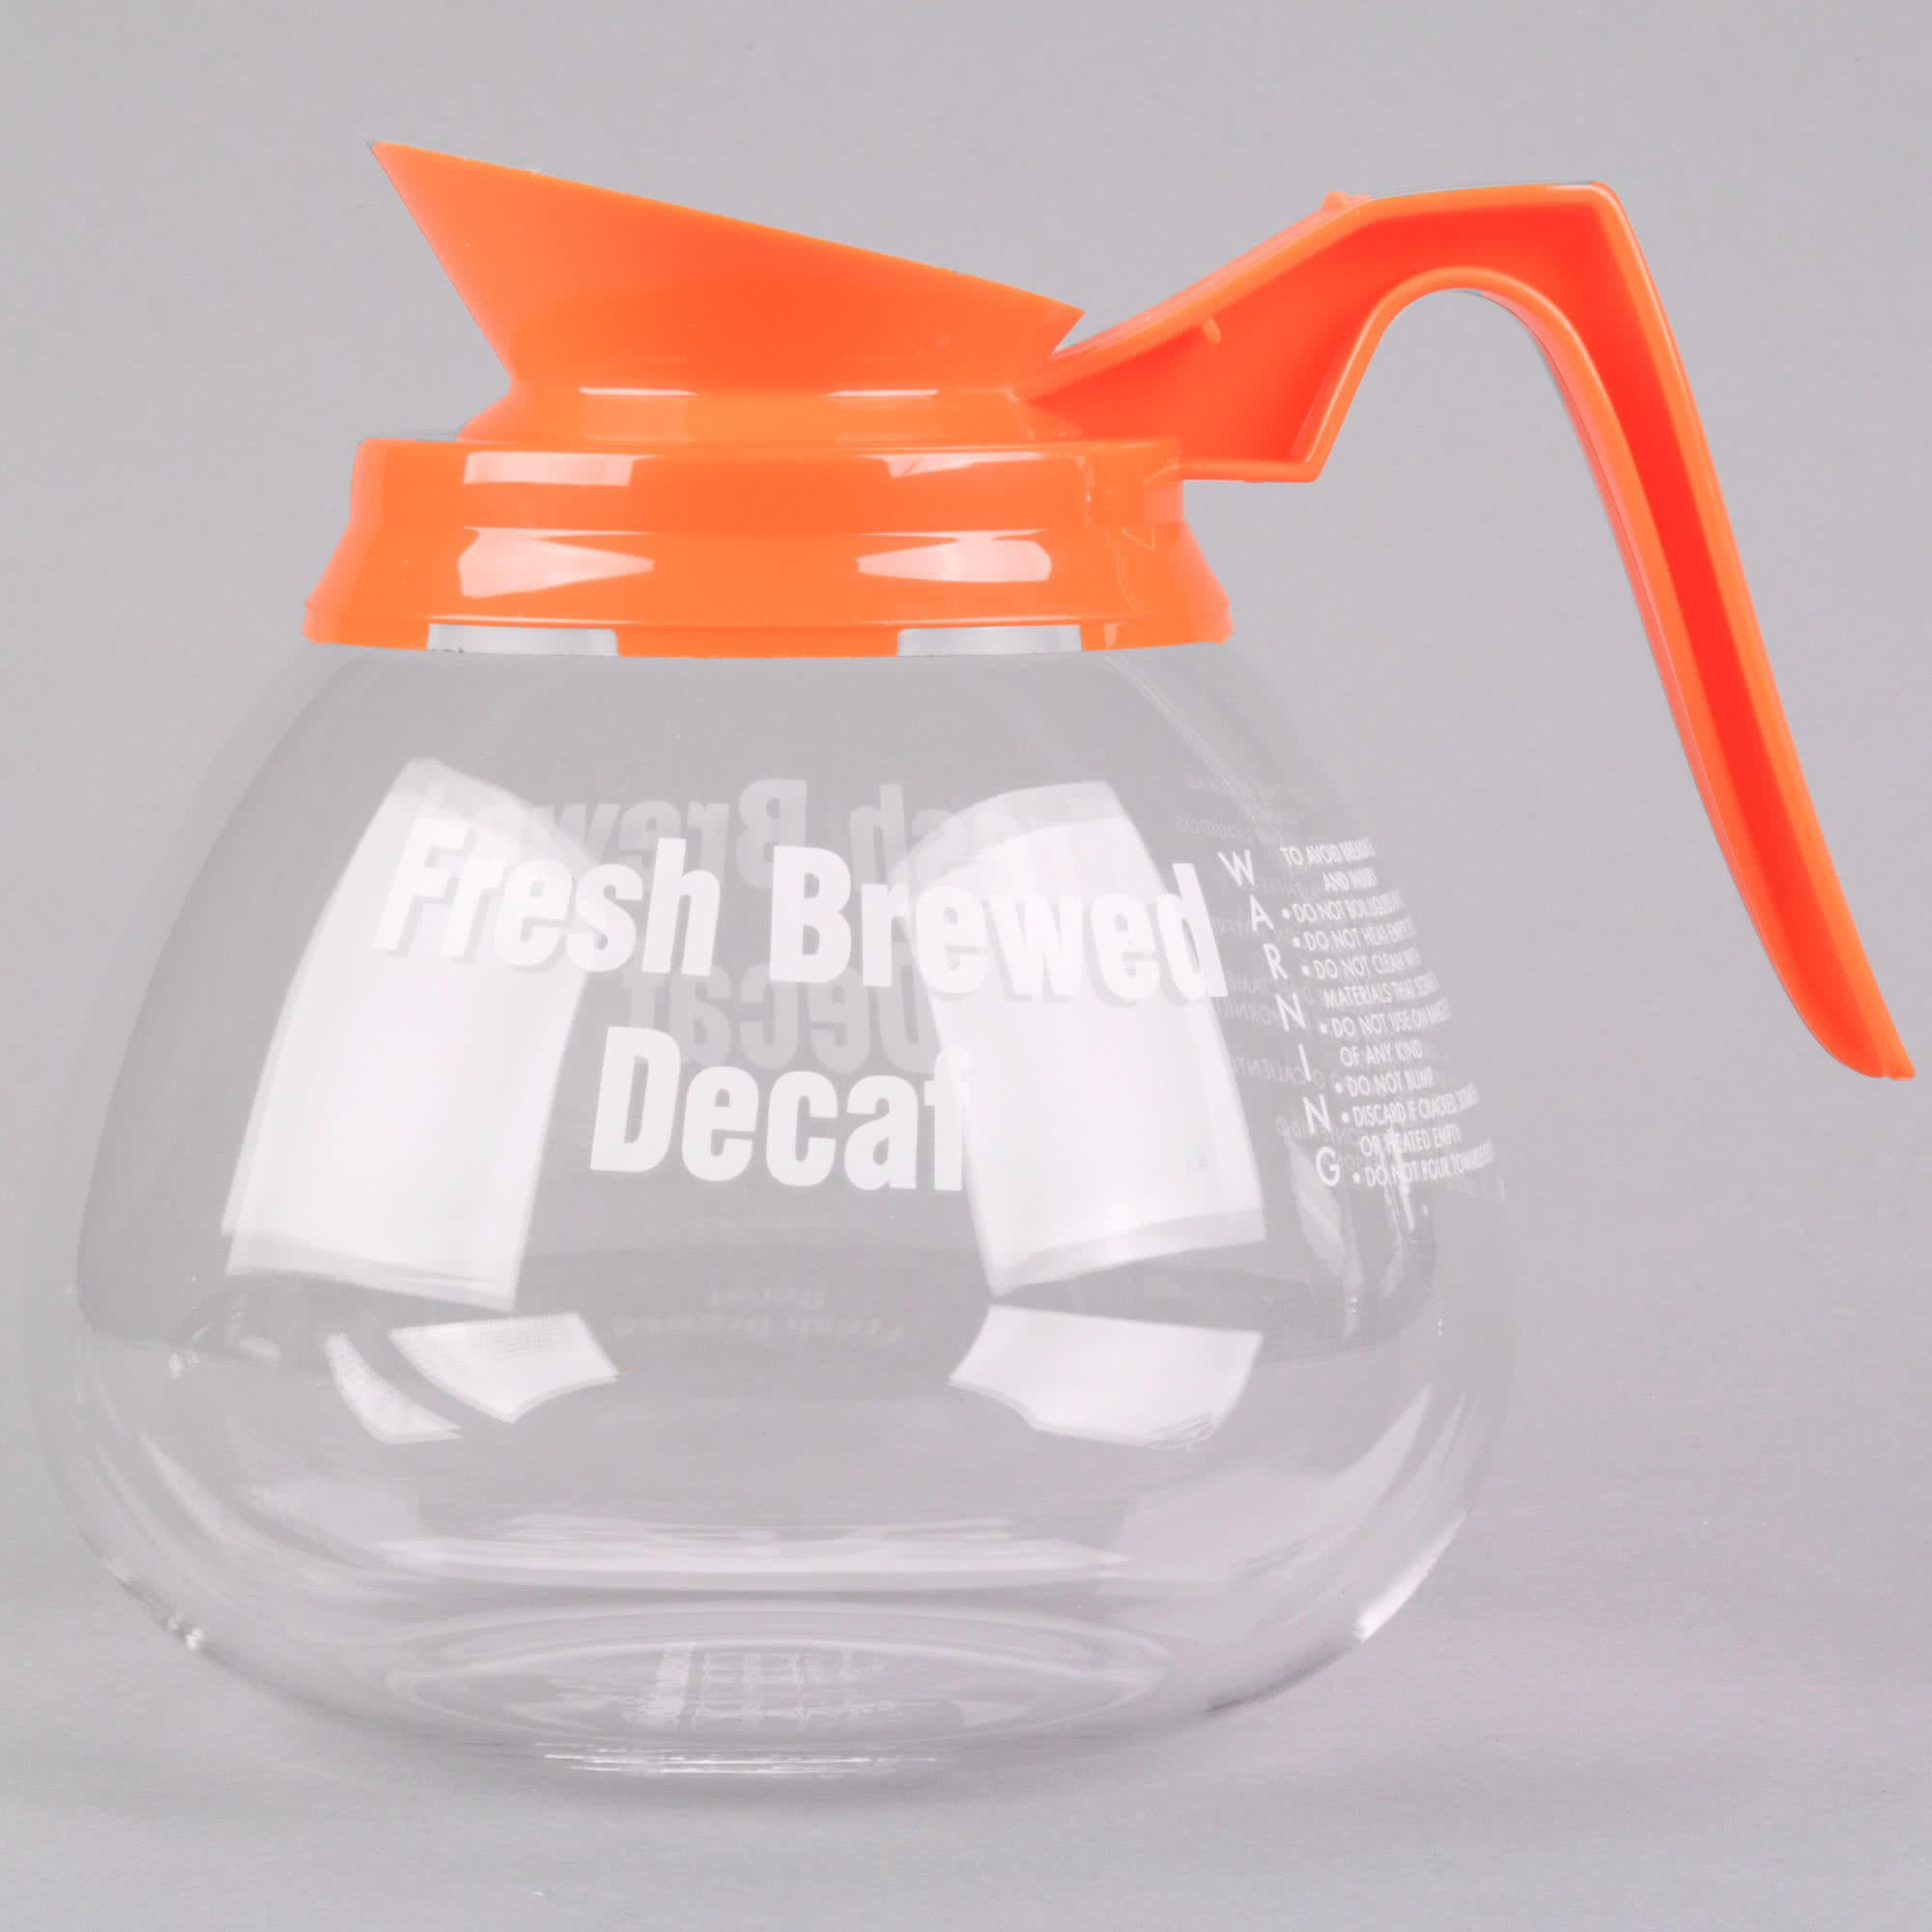 TableTop King 98006 64 oz. Glass Coffee Decanter with Orange Decaf Handle - 3/Pack